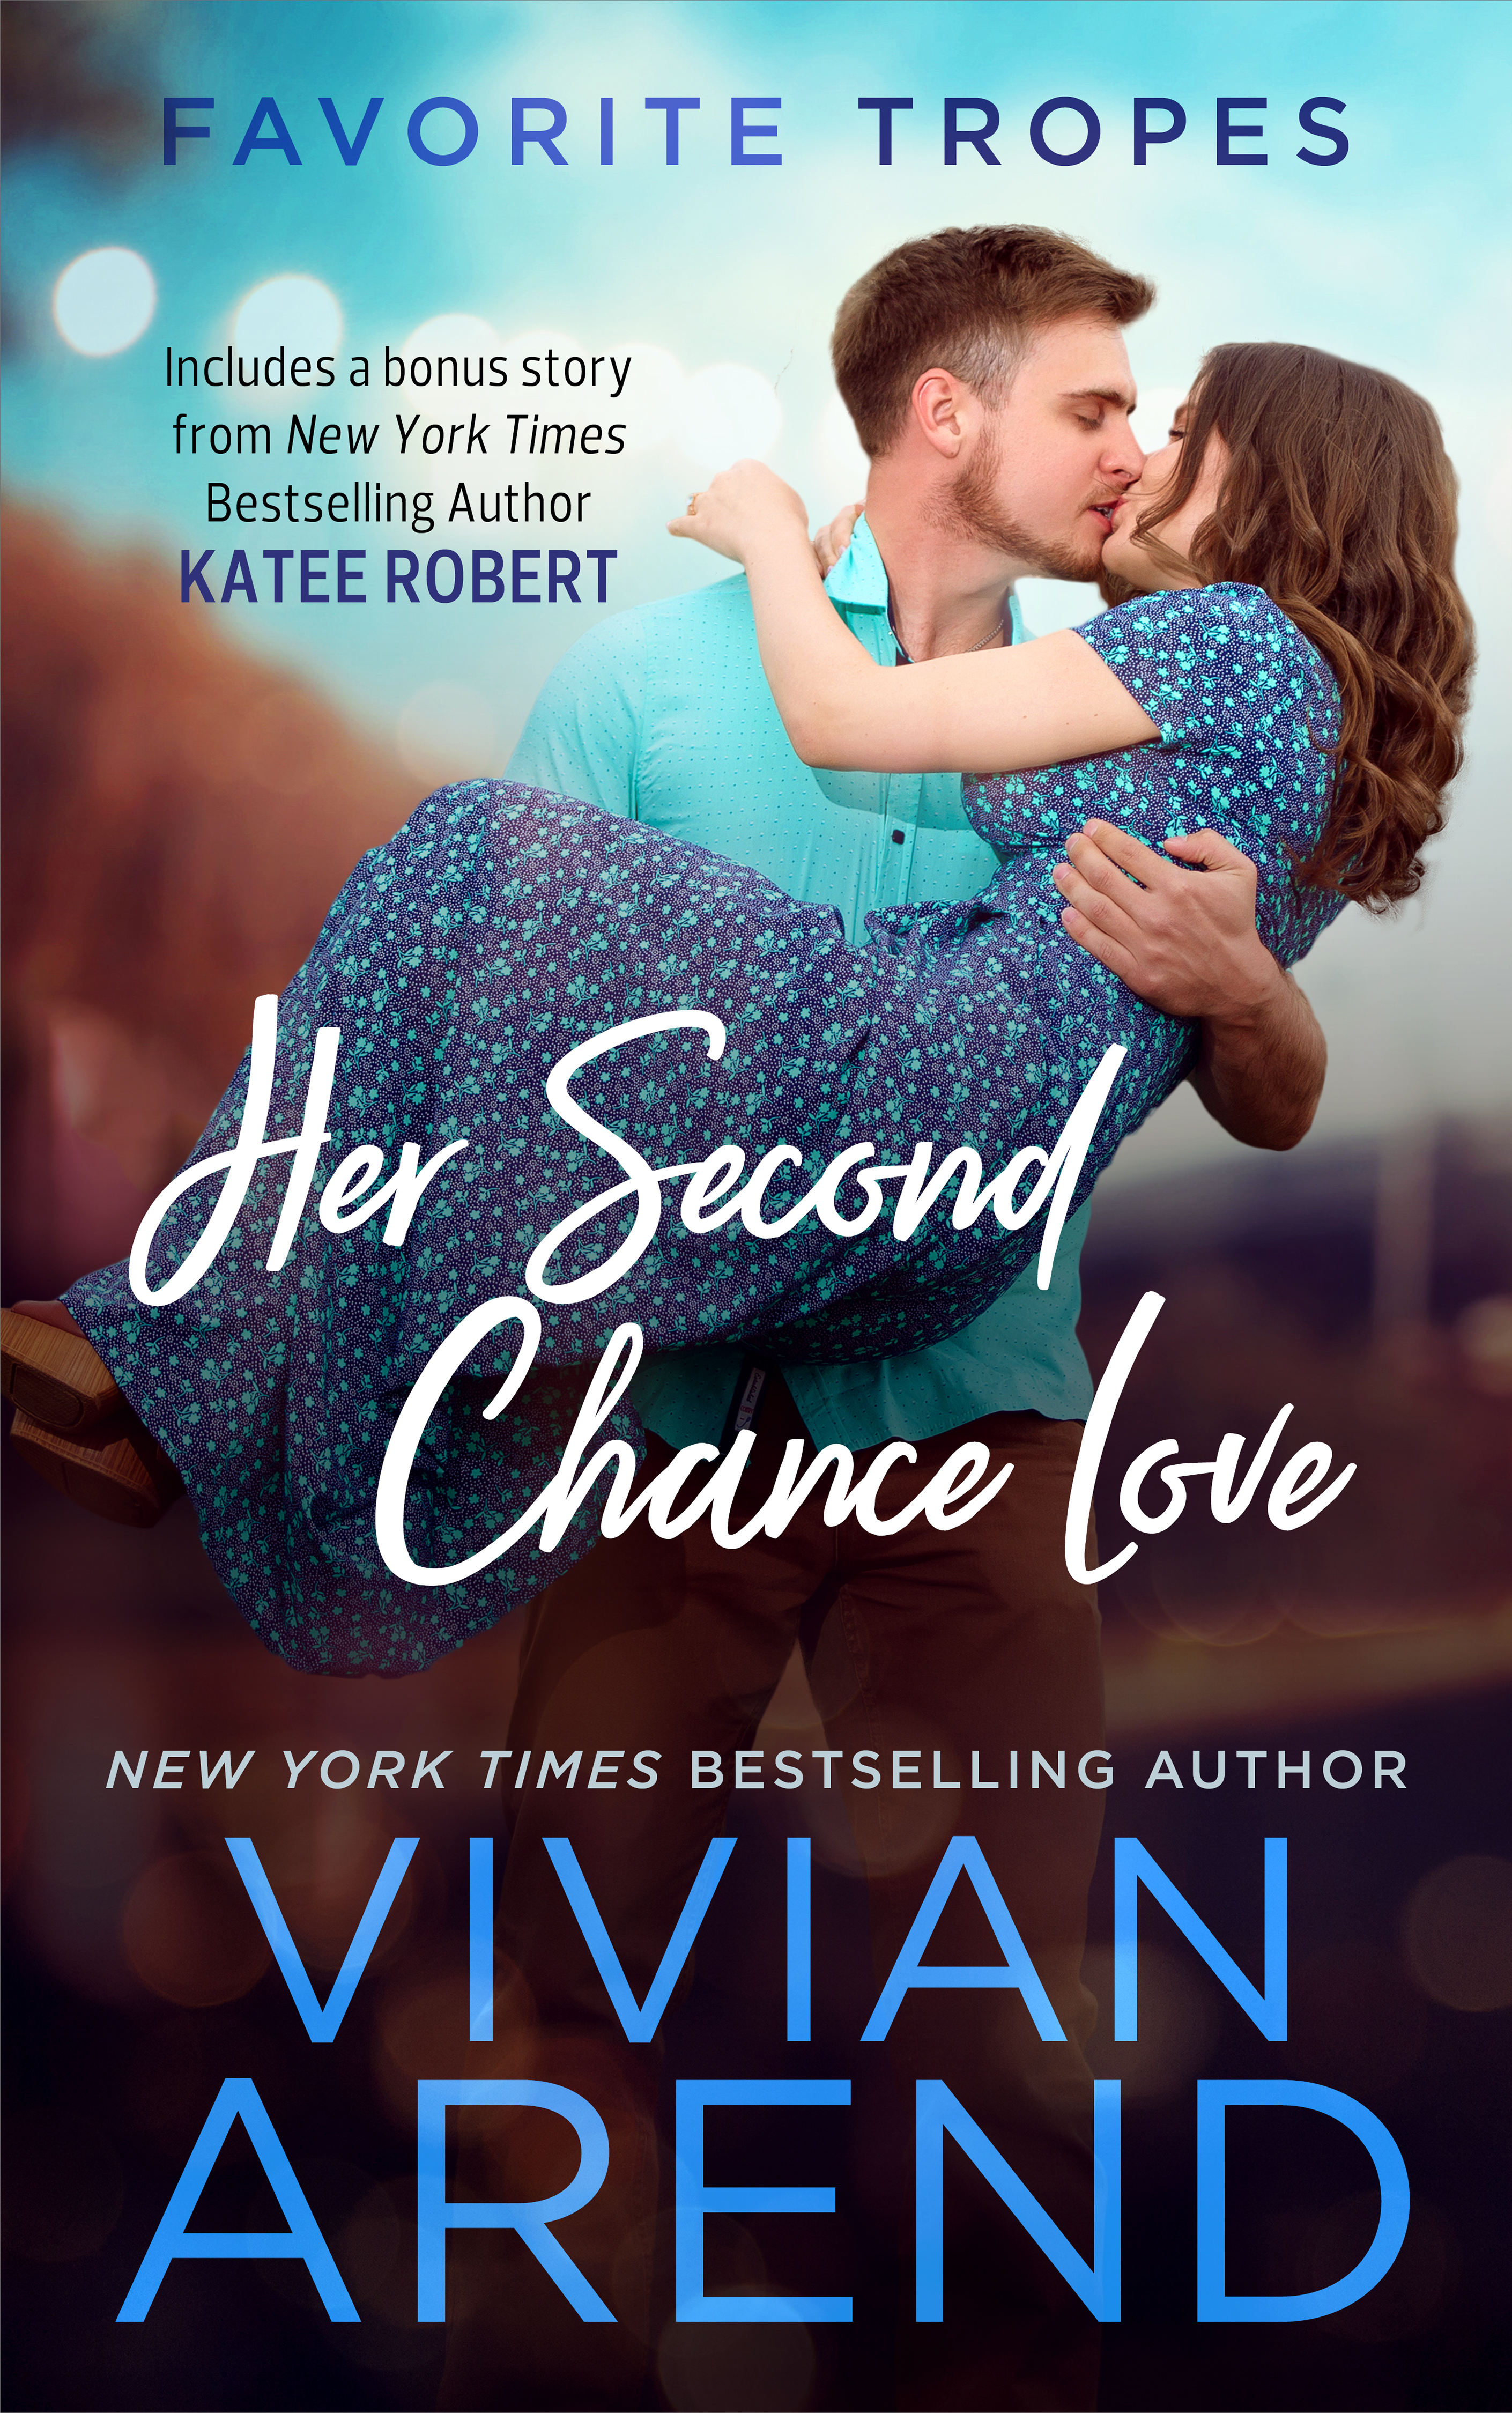 Her Second Chance Love